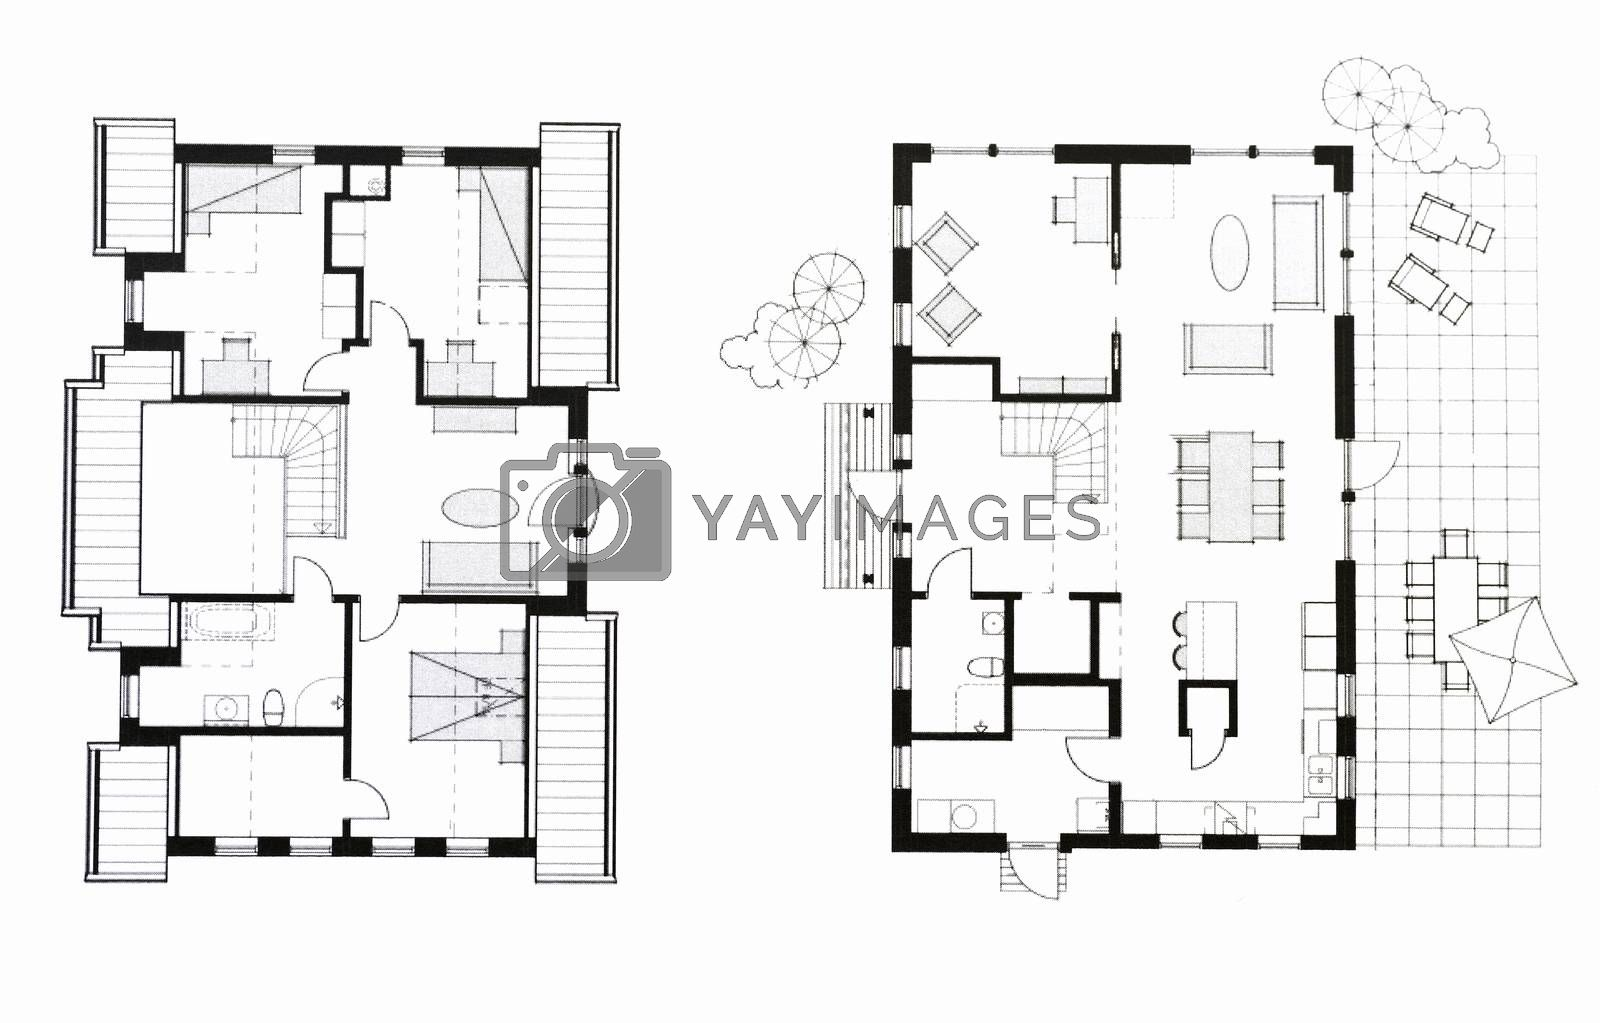 A photo of a blueprints depicting two storey house from above. Created for fun with my new CAD application.